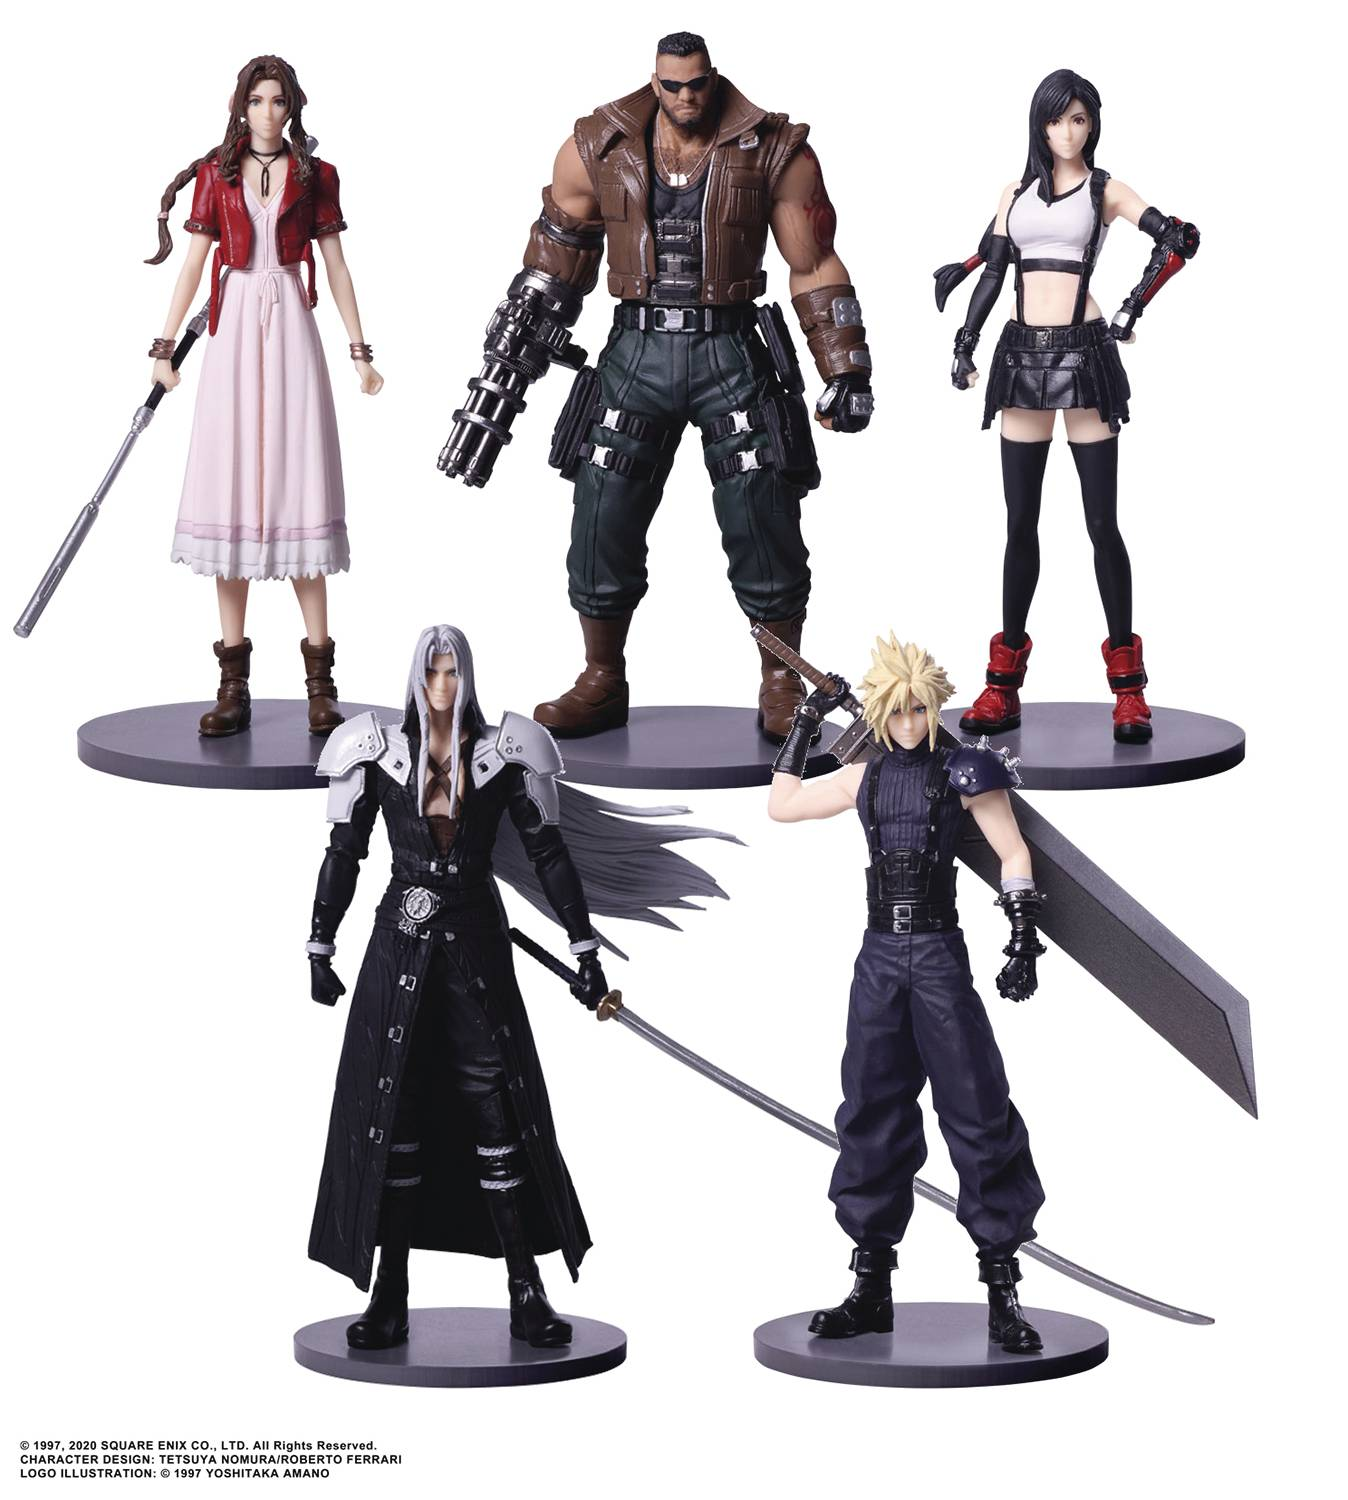 FINAL FANTASY VII REMAKE TRADING ARTS MINI FIG 5PC BMB DS